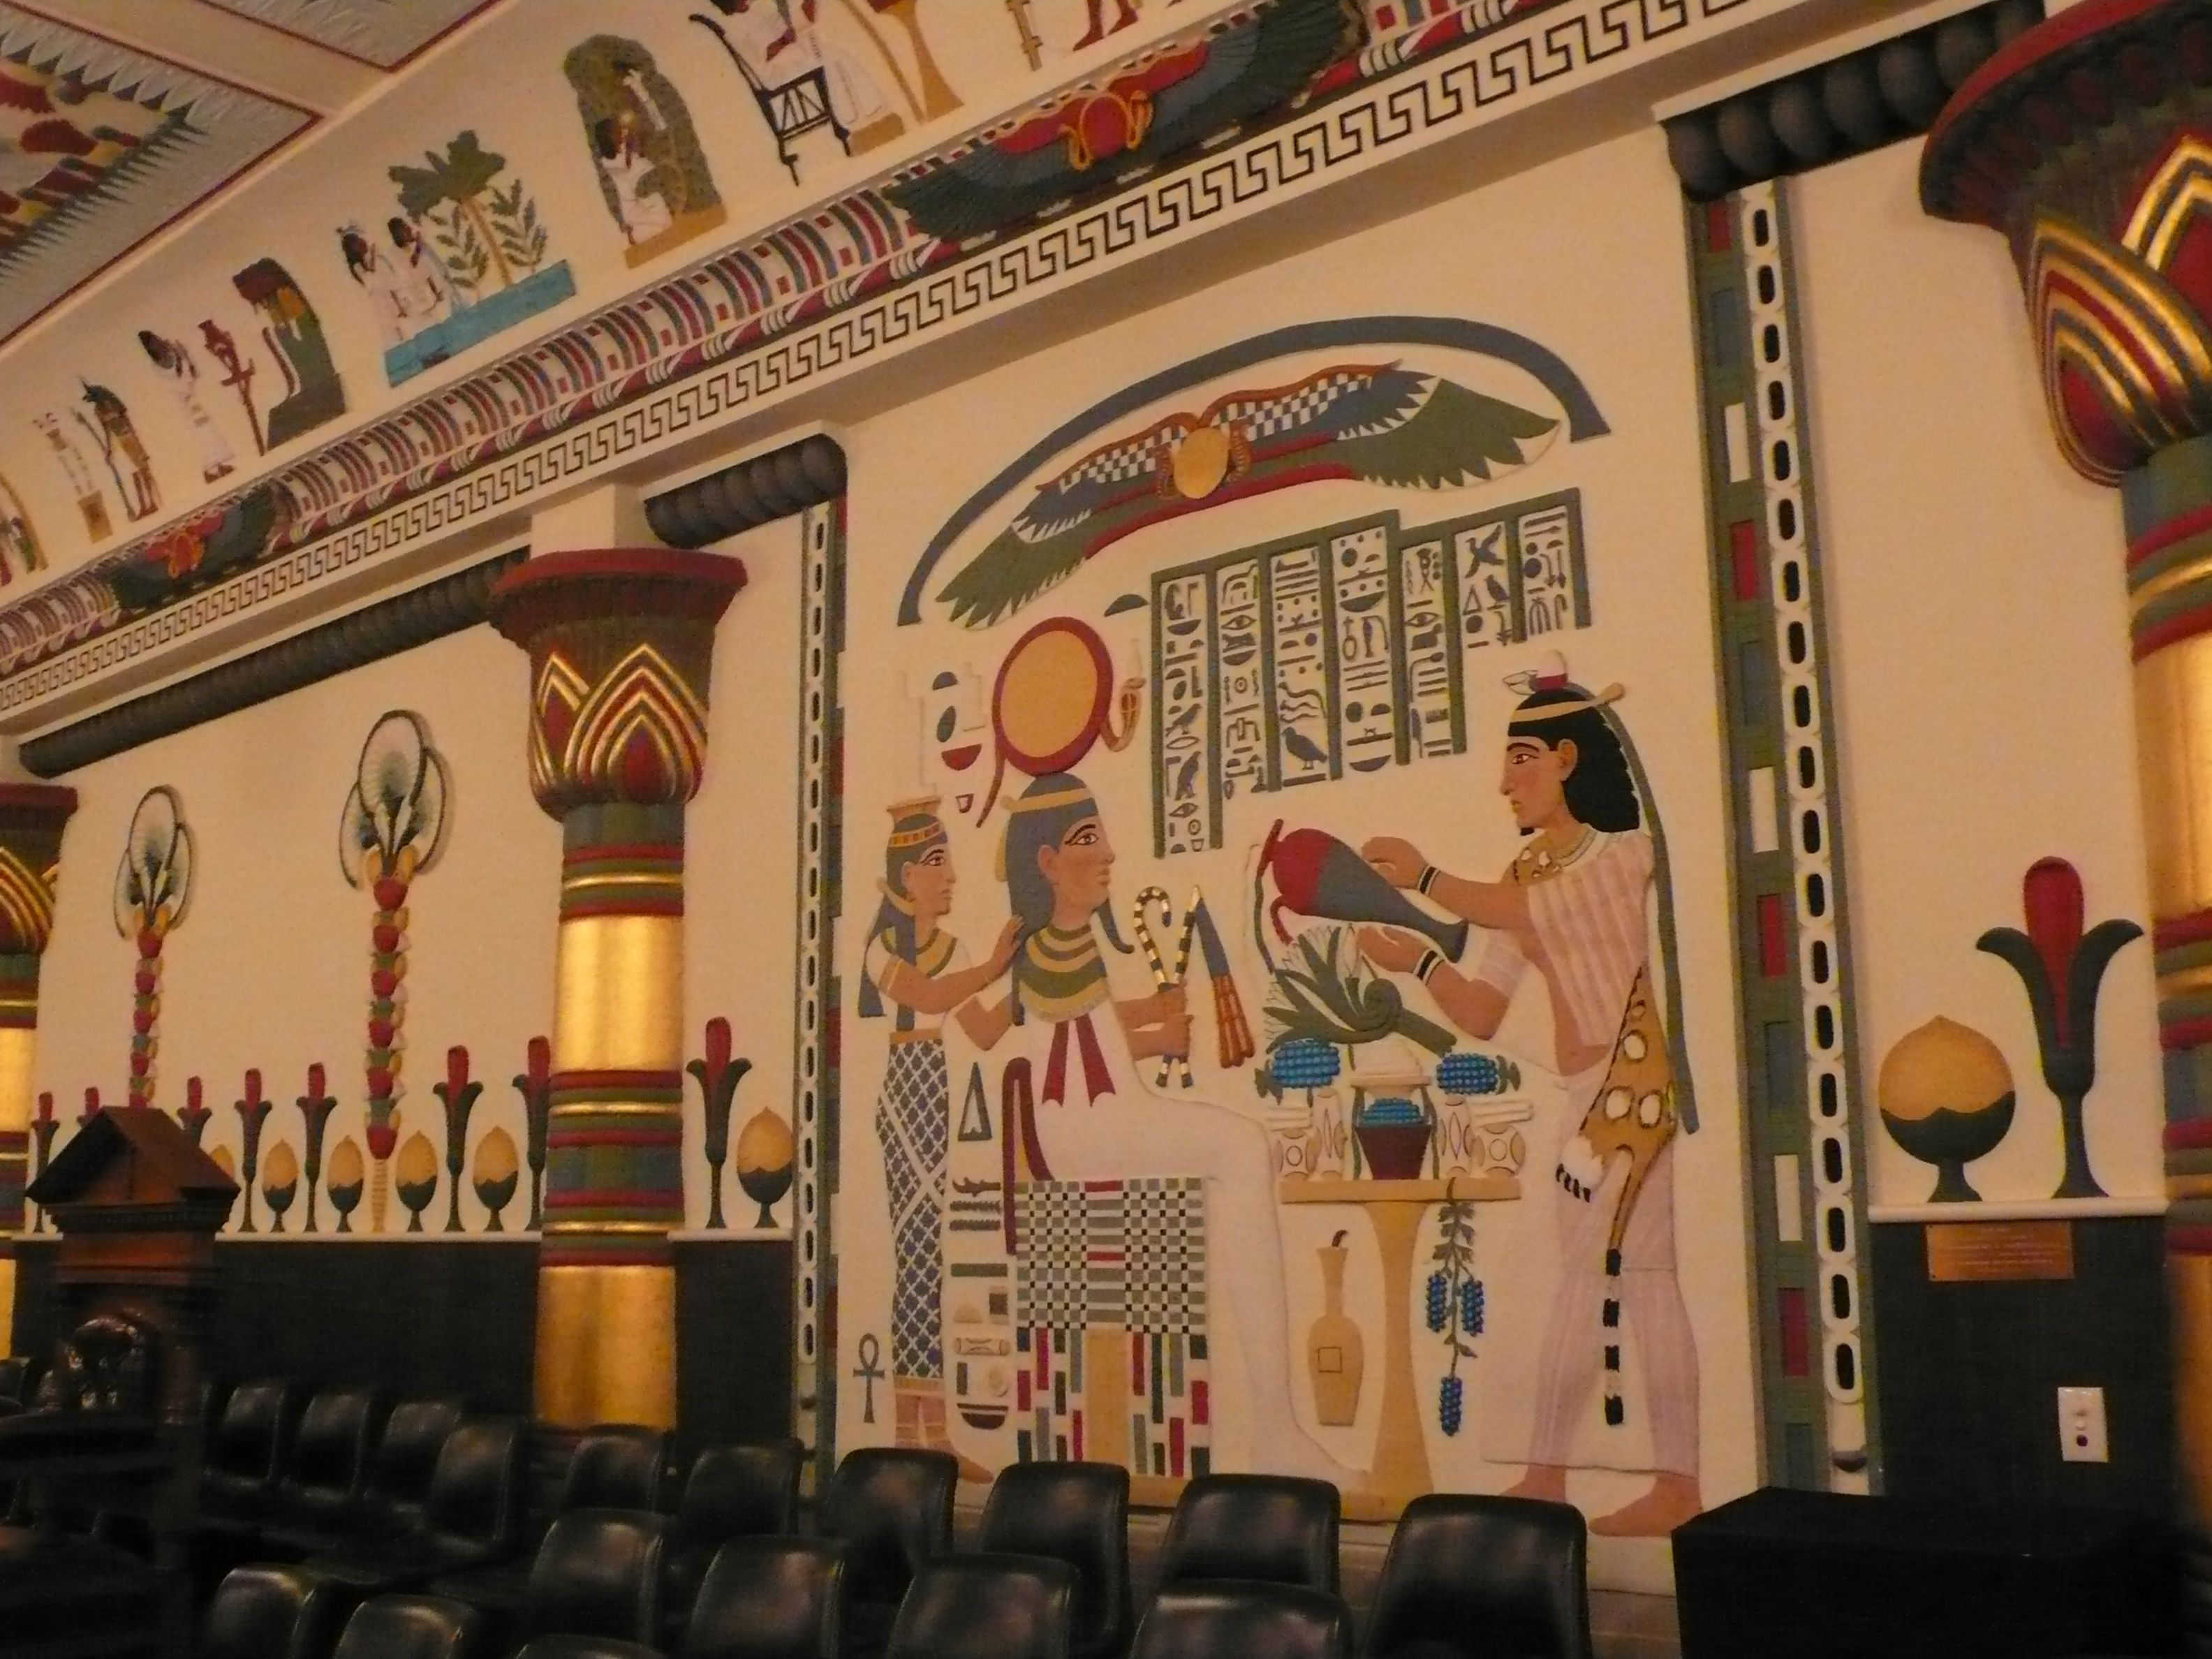 egyptian interior architecture